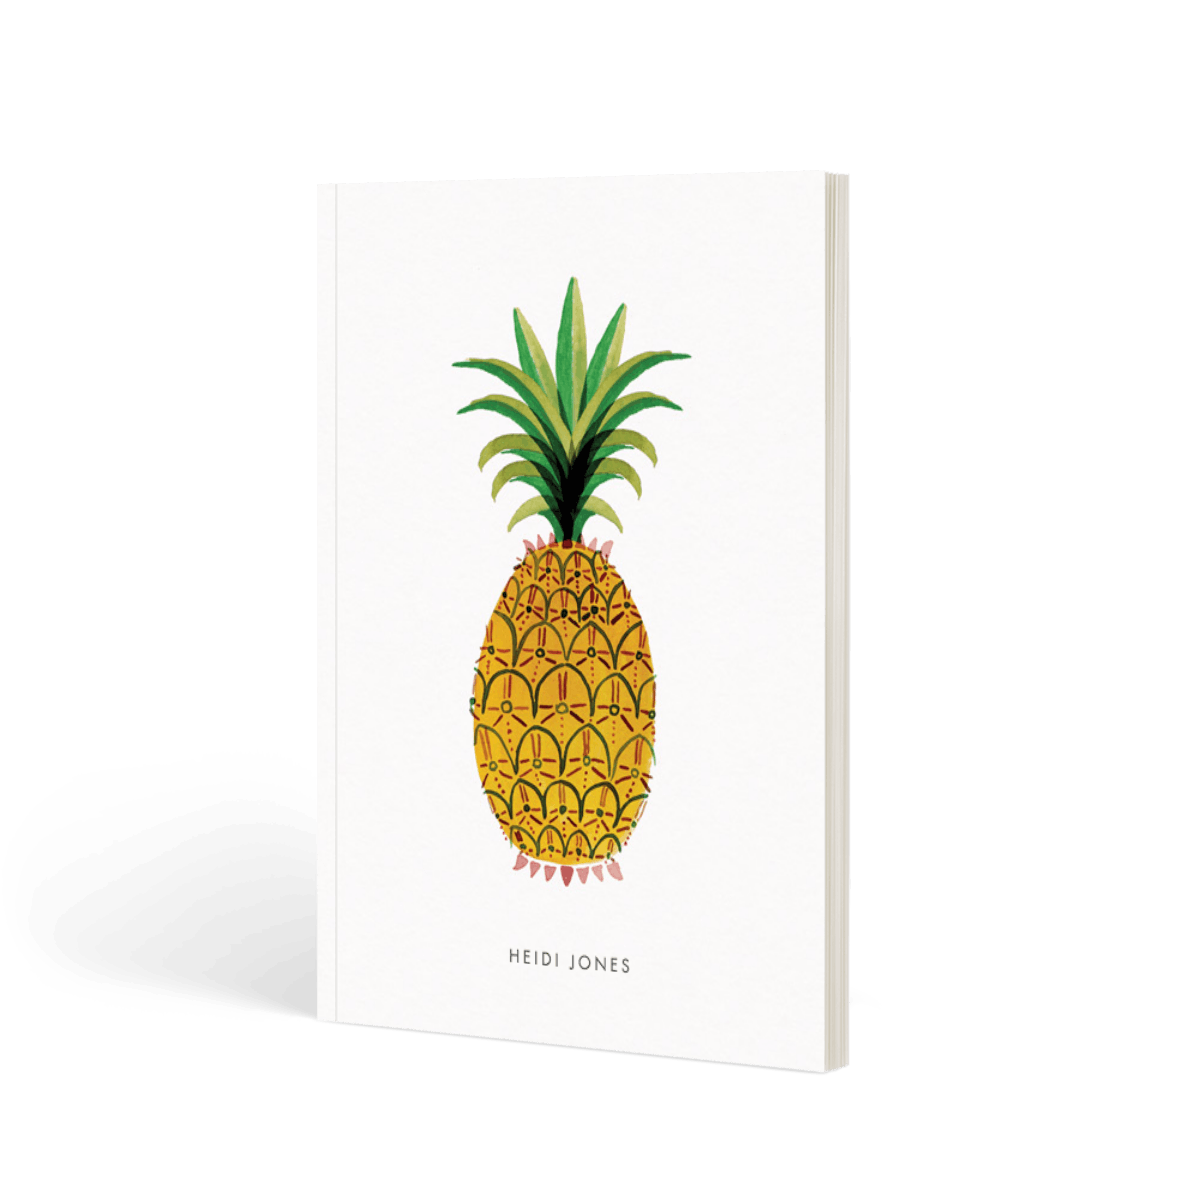 Https%3a%2f%2fwww.papier.com%2fproduct image%2f6286%2f6%2fpineapple 1609 front 1461596707.png?ixlib=rb 1.1